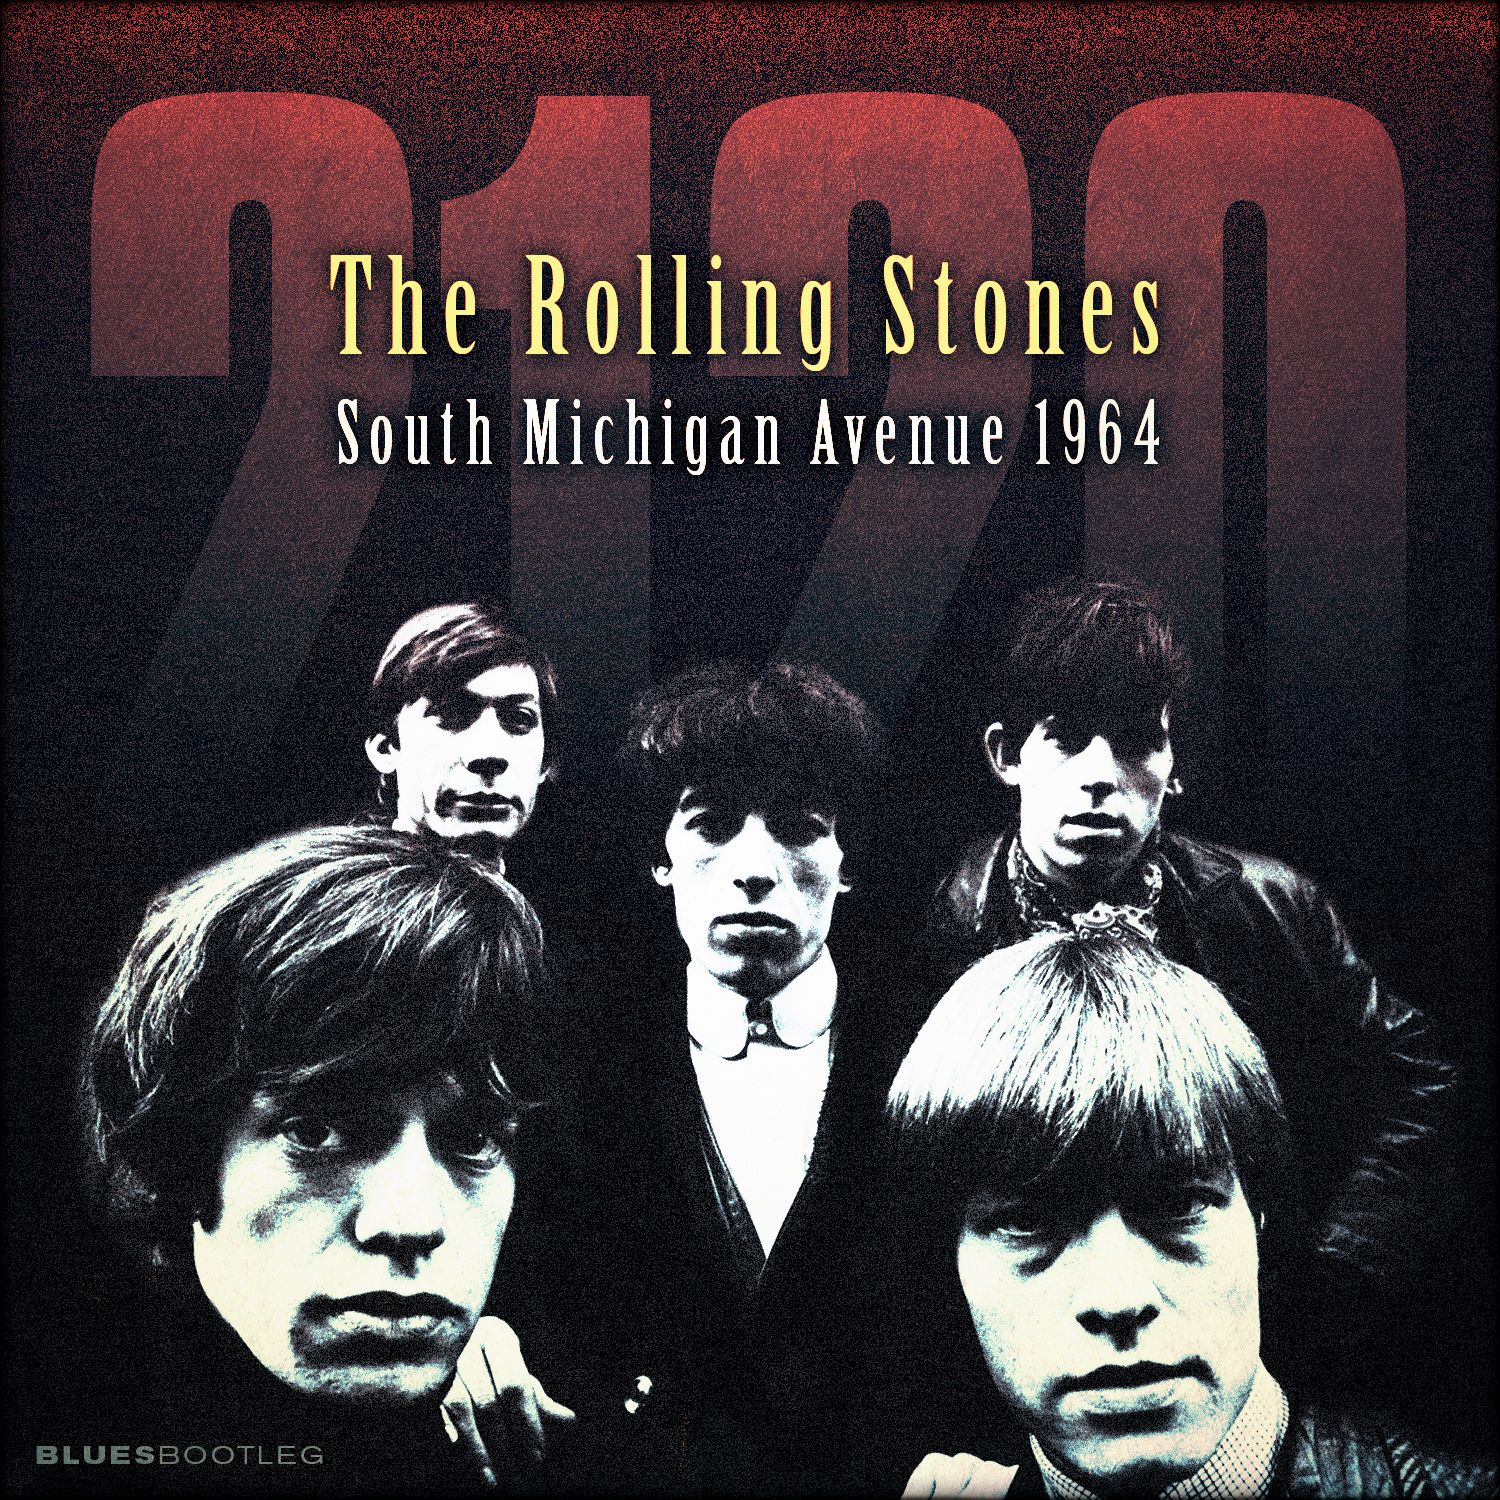 The Rolling Stones - 2120 South Michigan Avenue 1964   Graphic ...